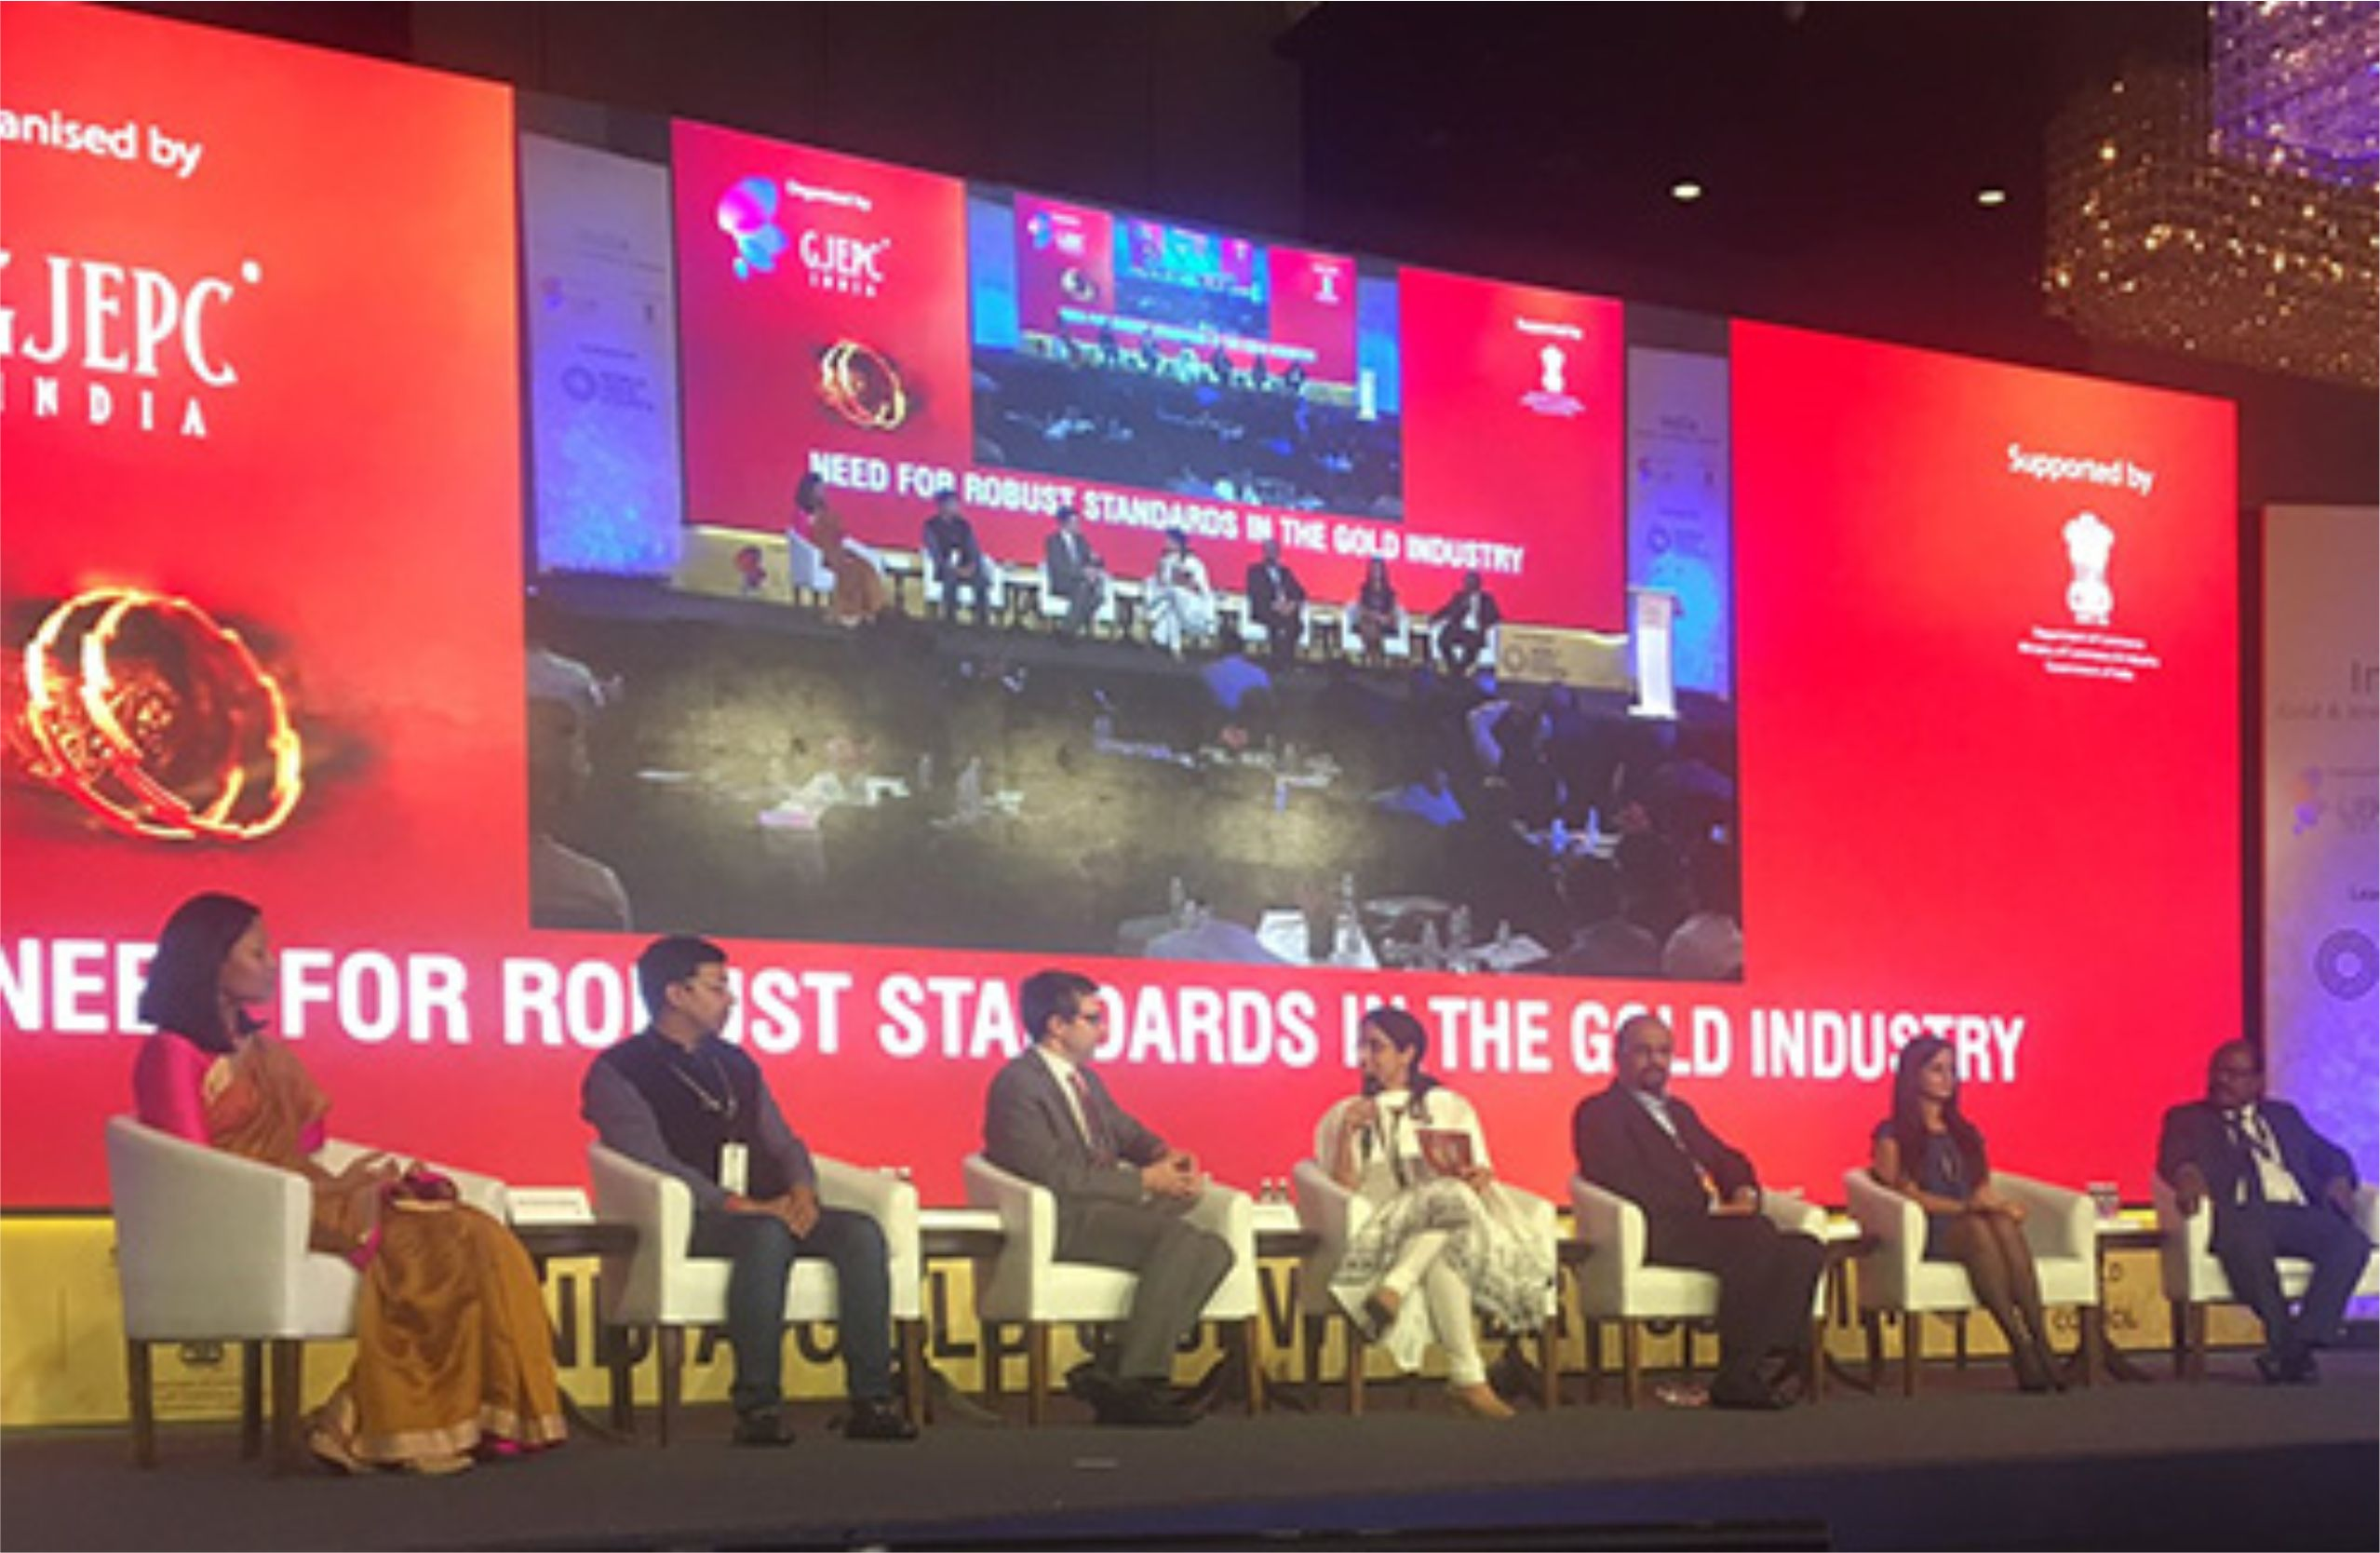 India & Gold Jewellery Summit: Upgrade Technology, Establish Quality Standards to Drive Growth